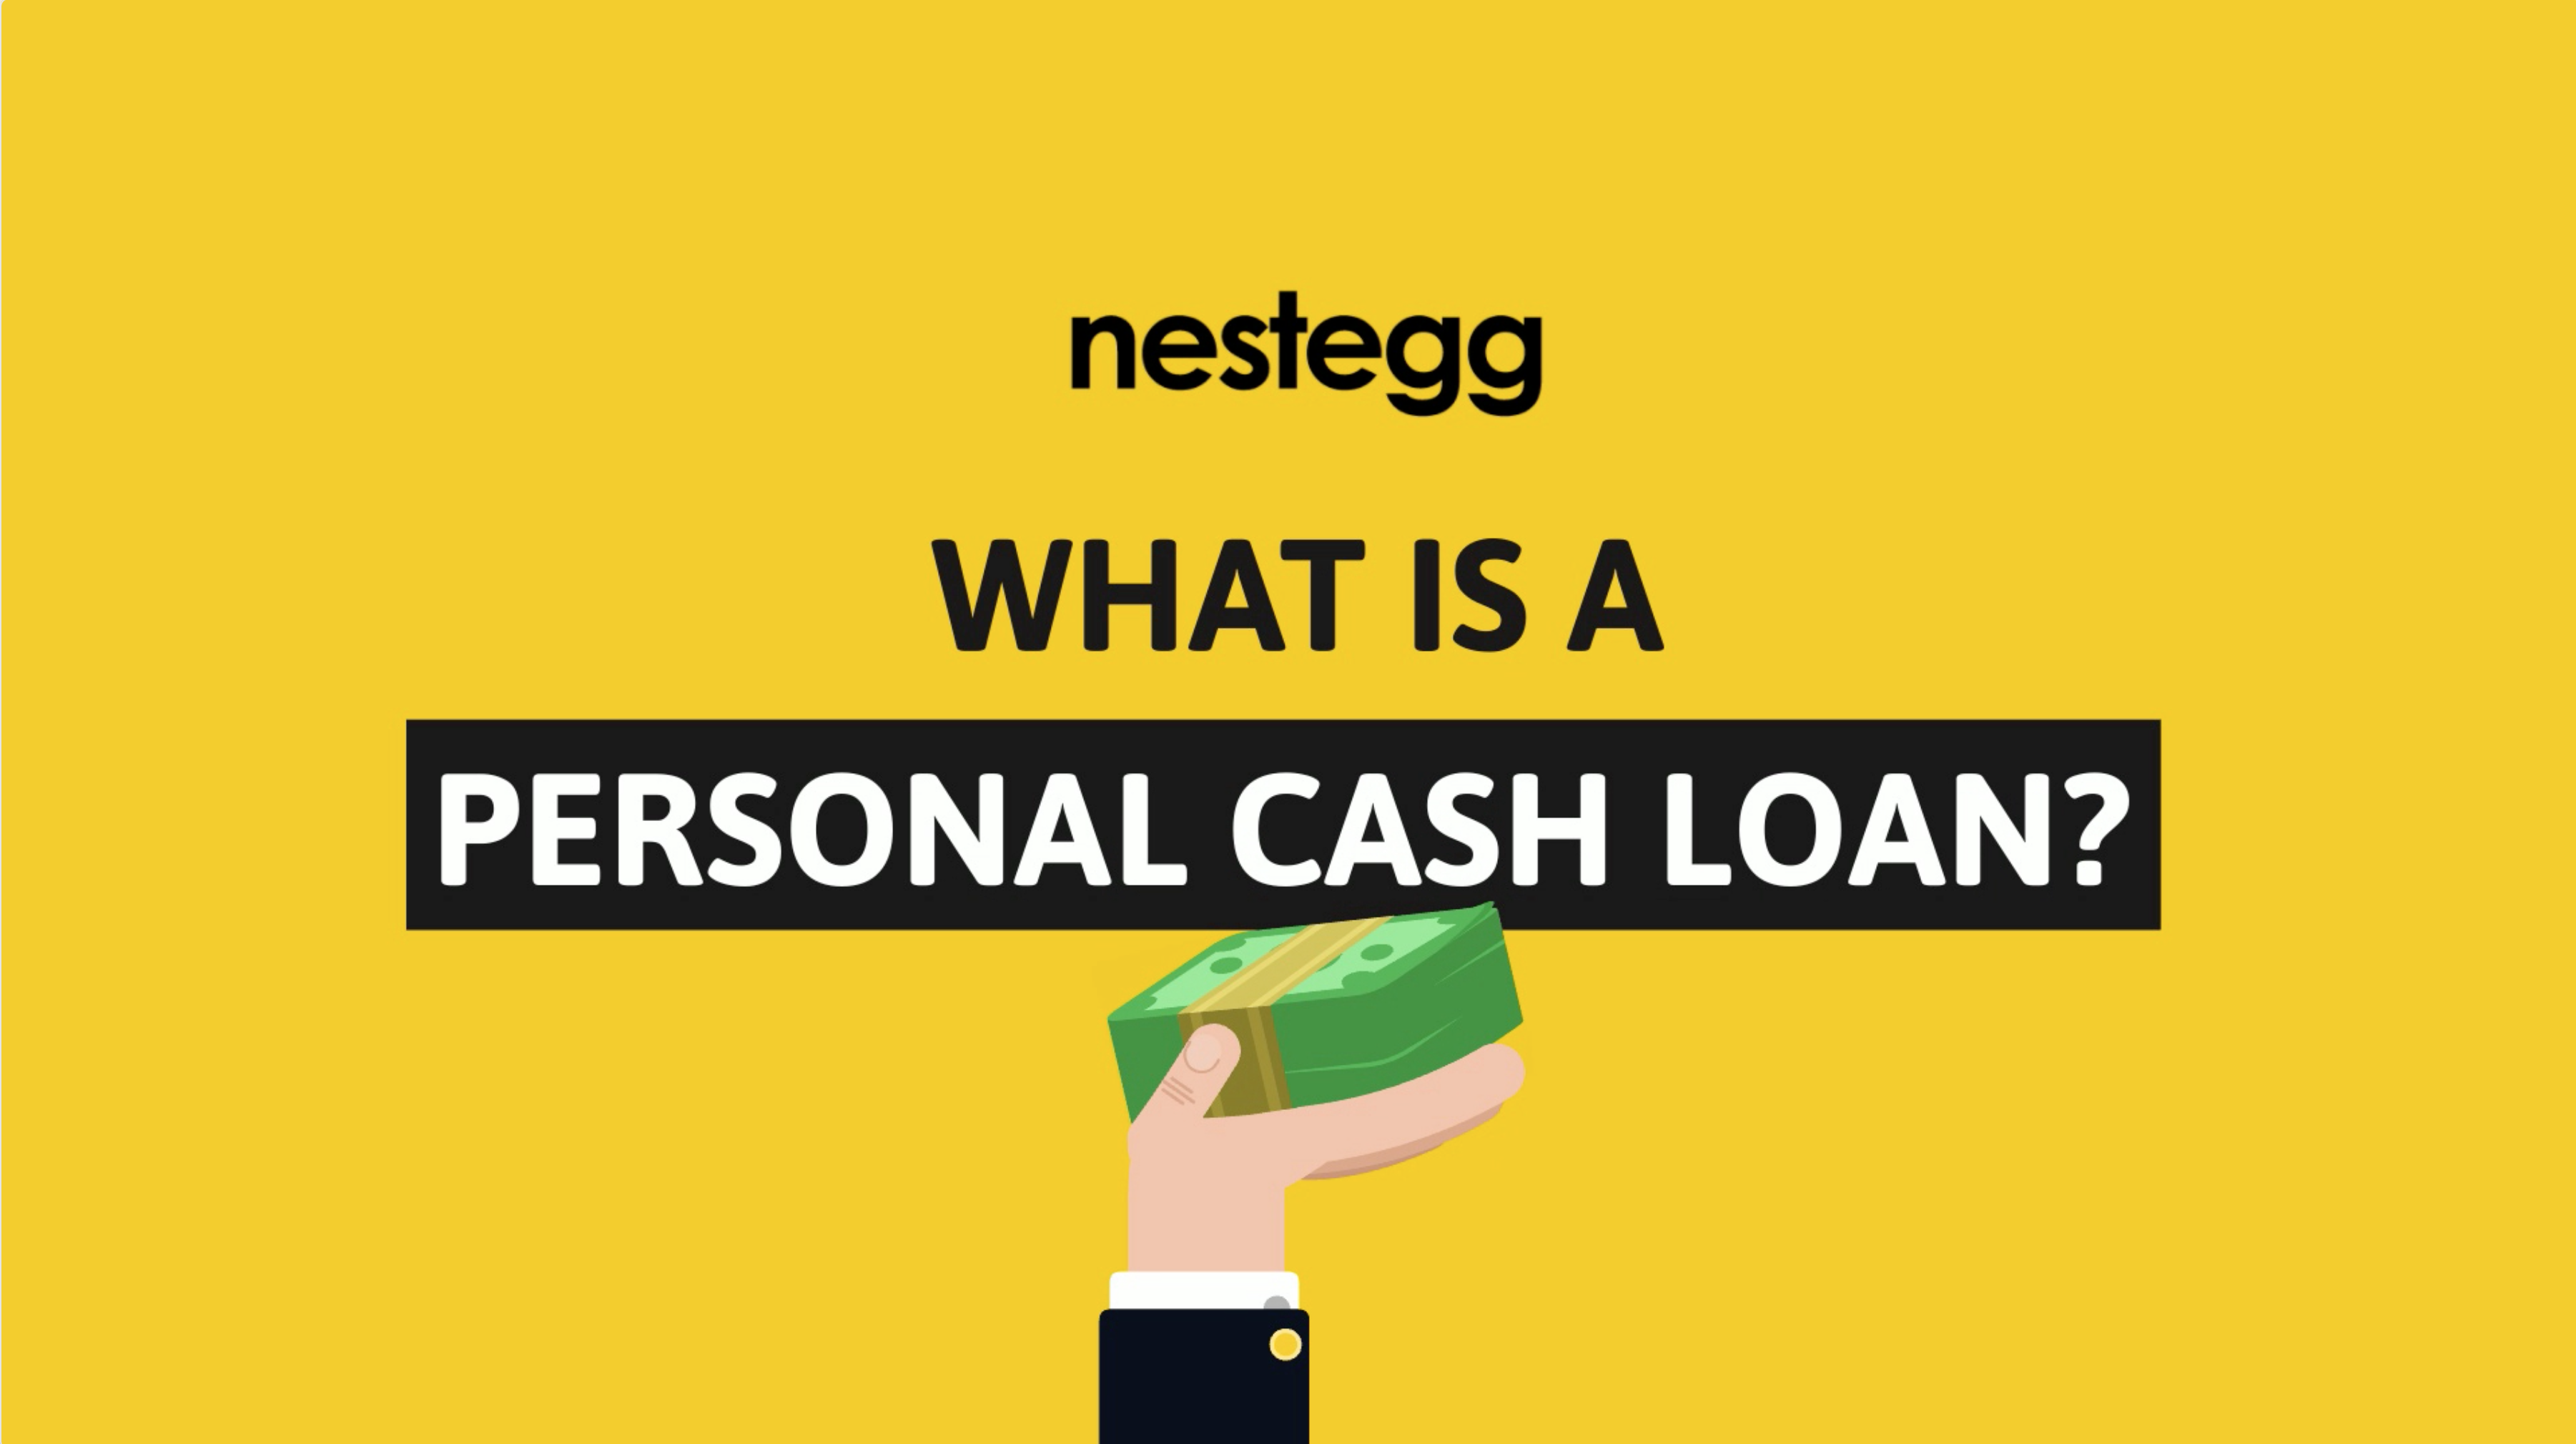 What is a personal cash loan?